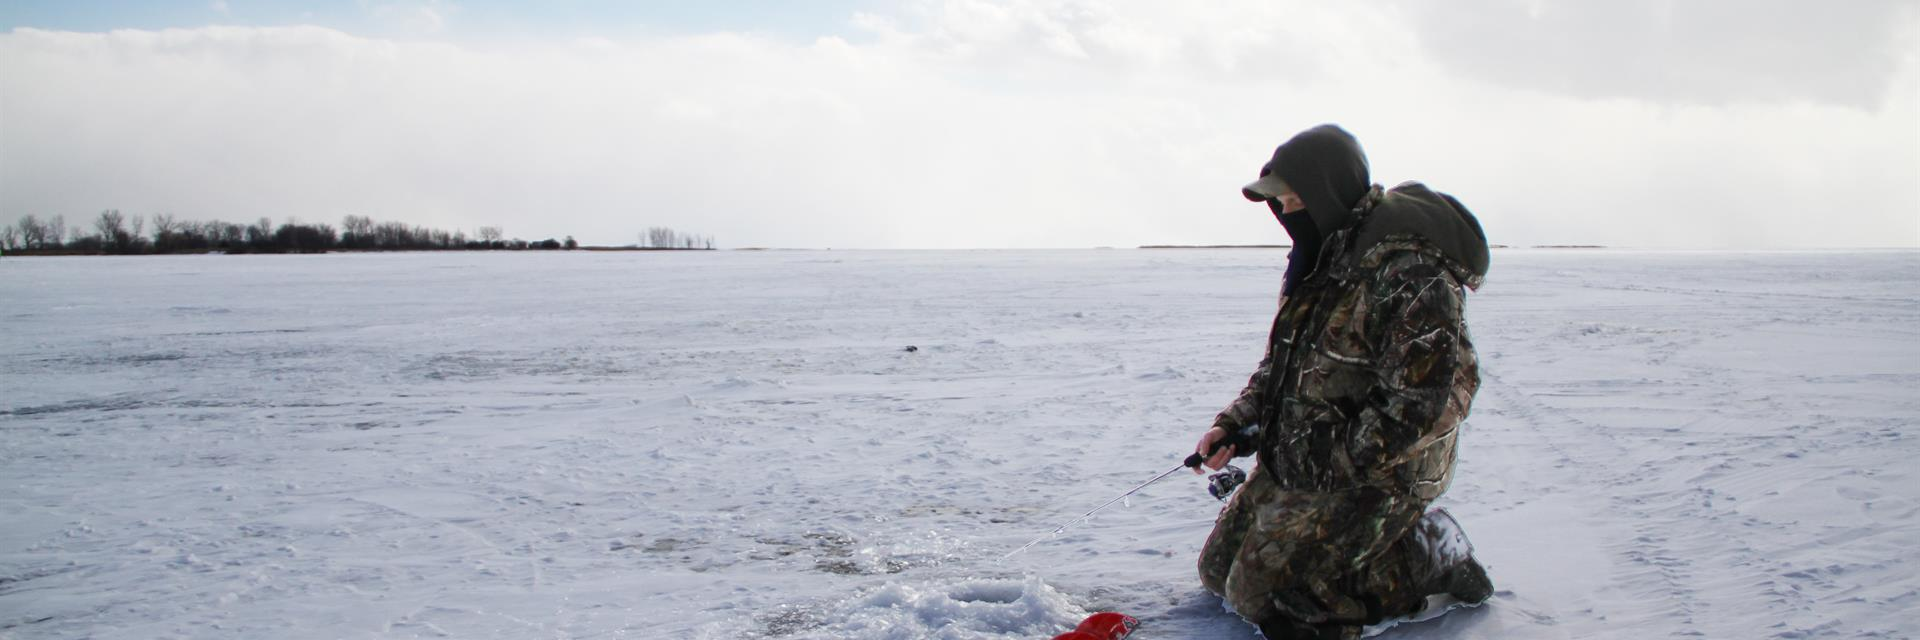 Ice fisher on Mitchell's Bay